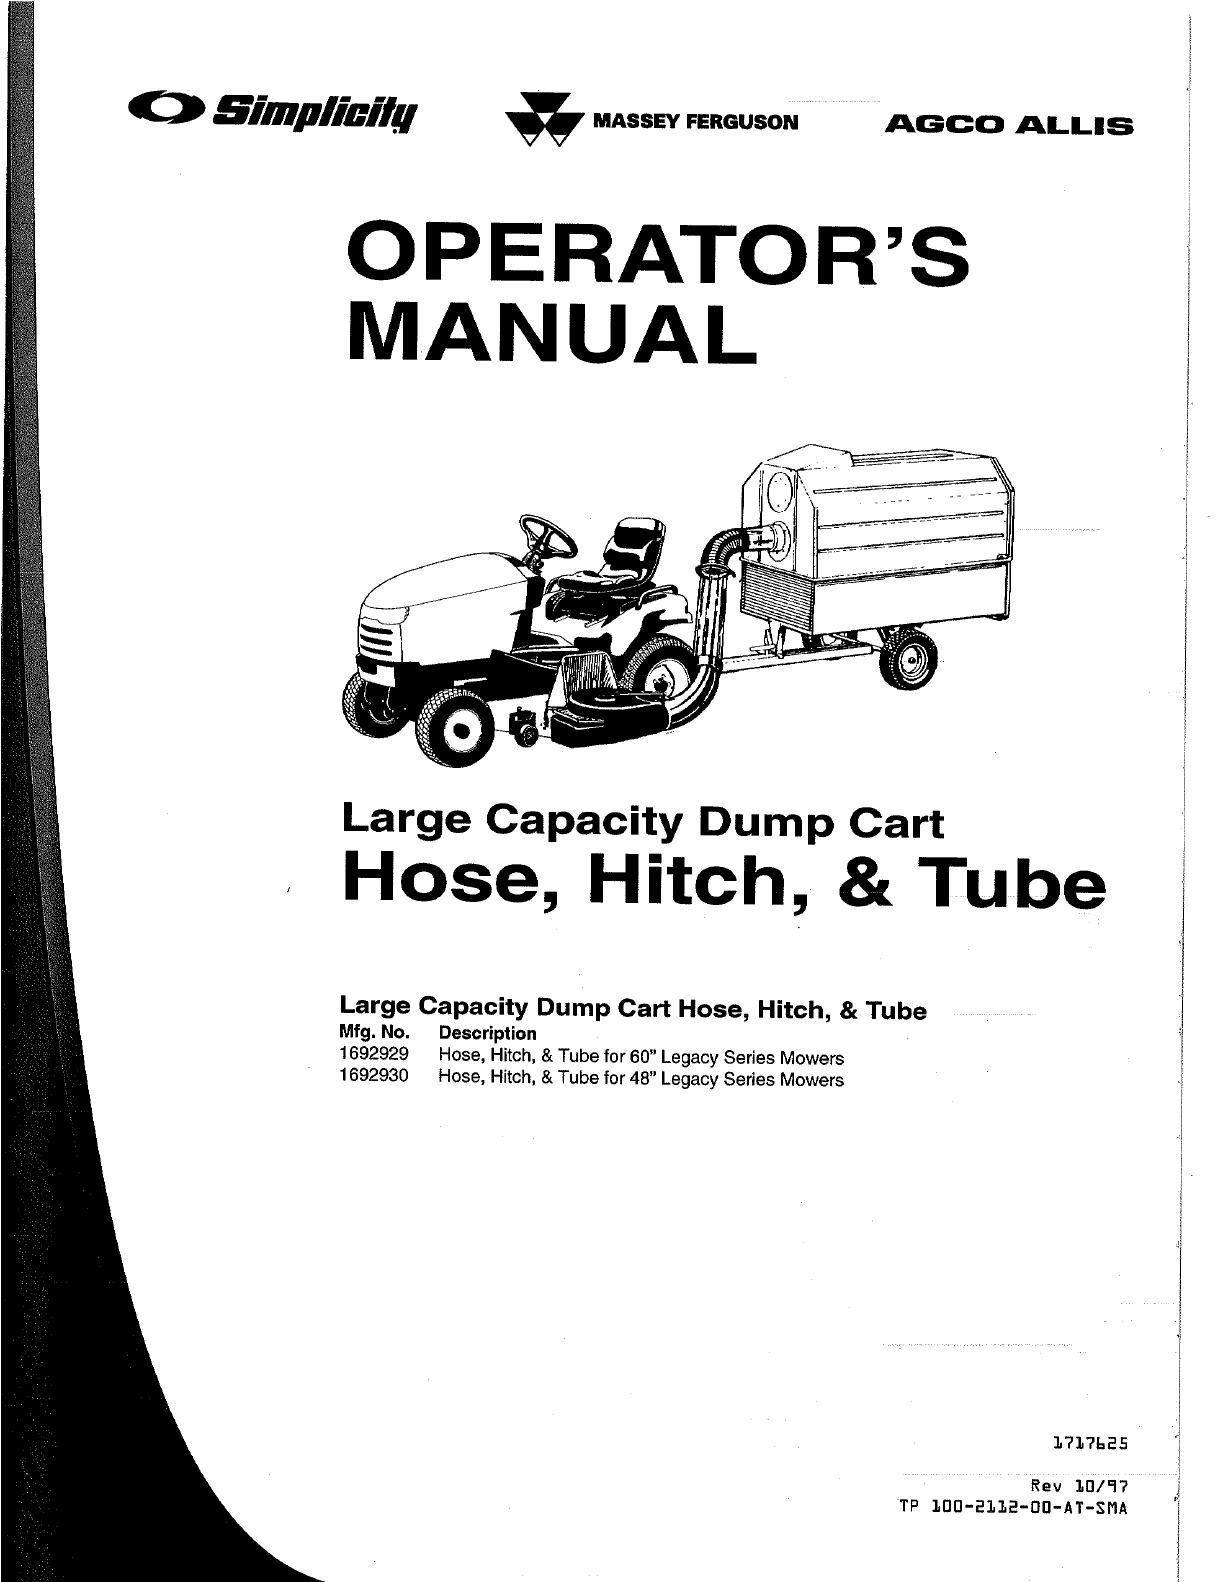 Simplicity 3 In 1 Dehumidifier Manual